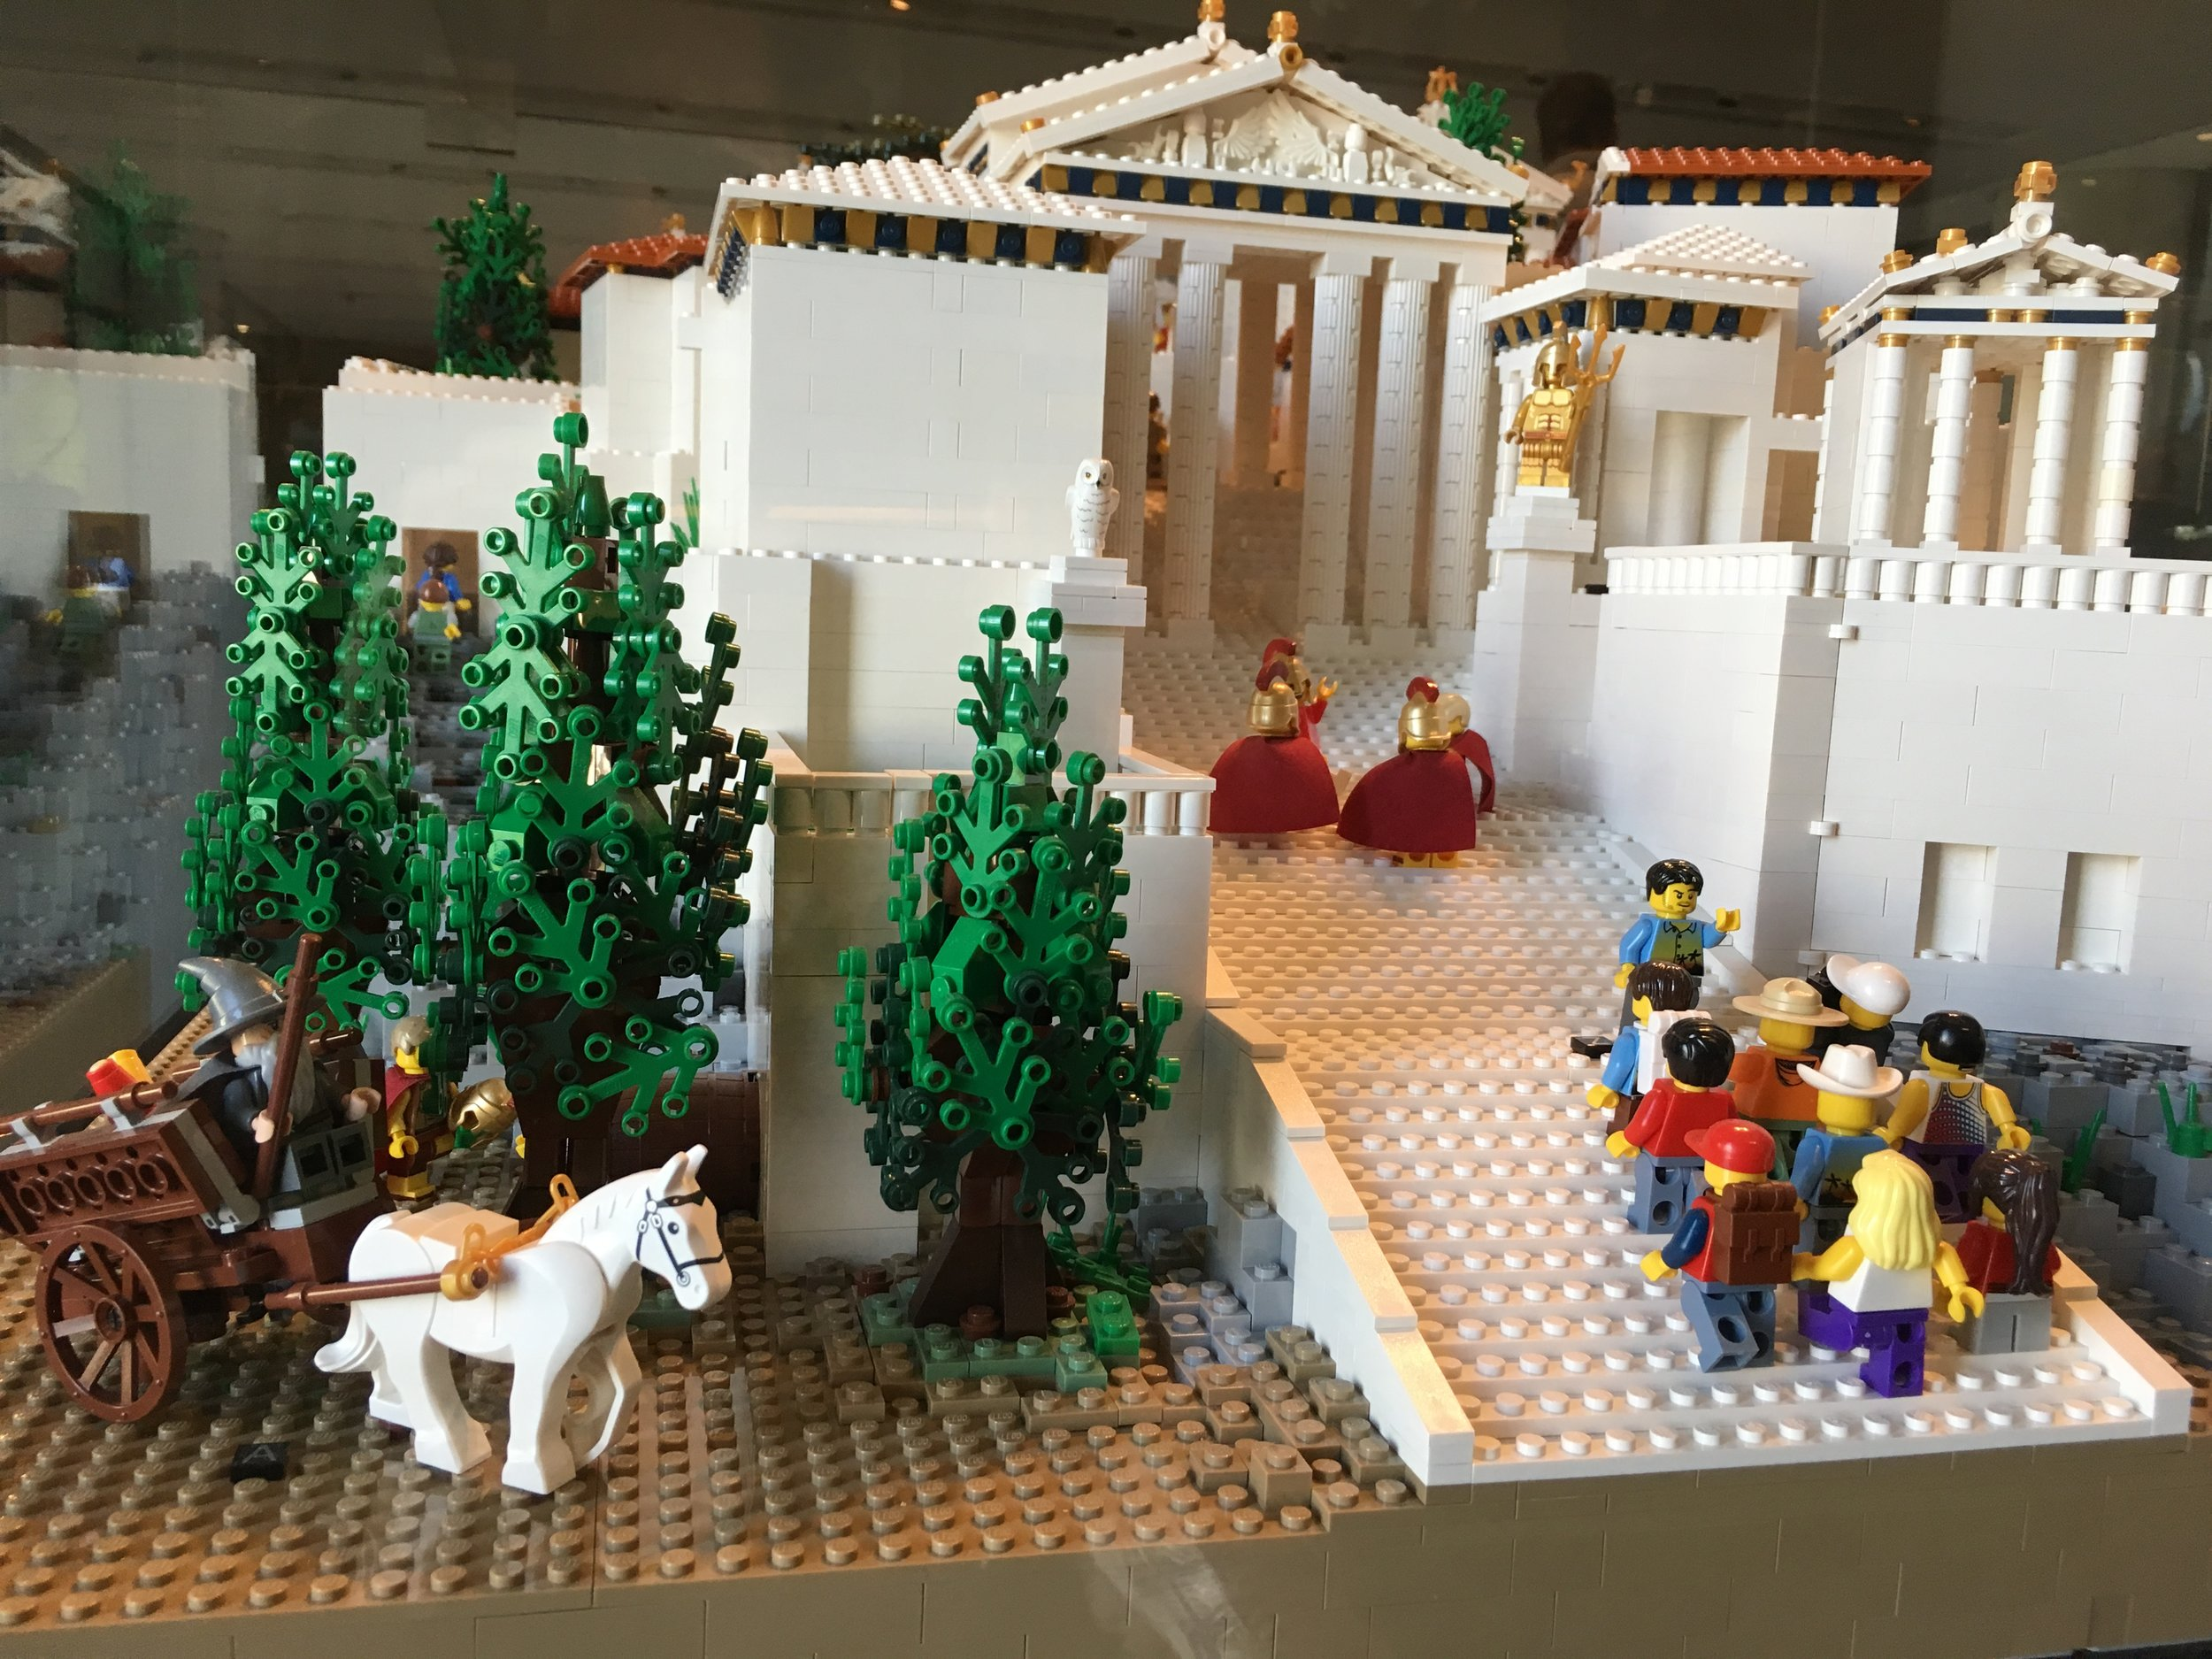 Lego replica of the Parthenon. Apparently Gandalf hung out with the Greeks too.